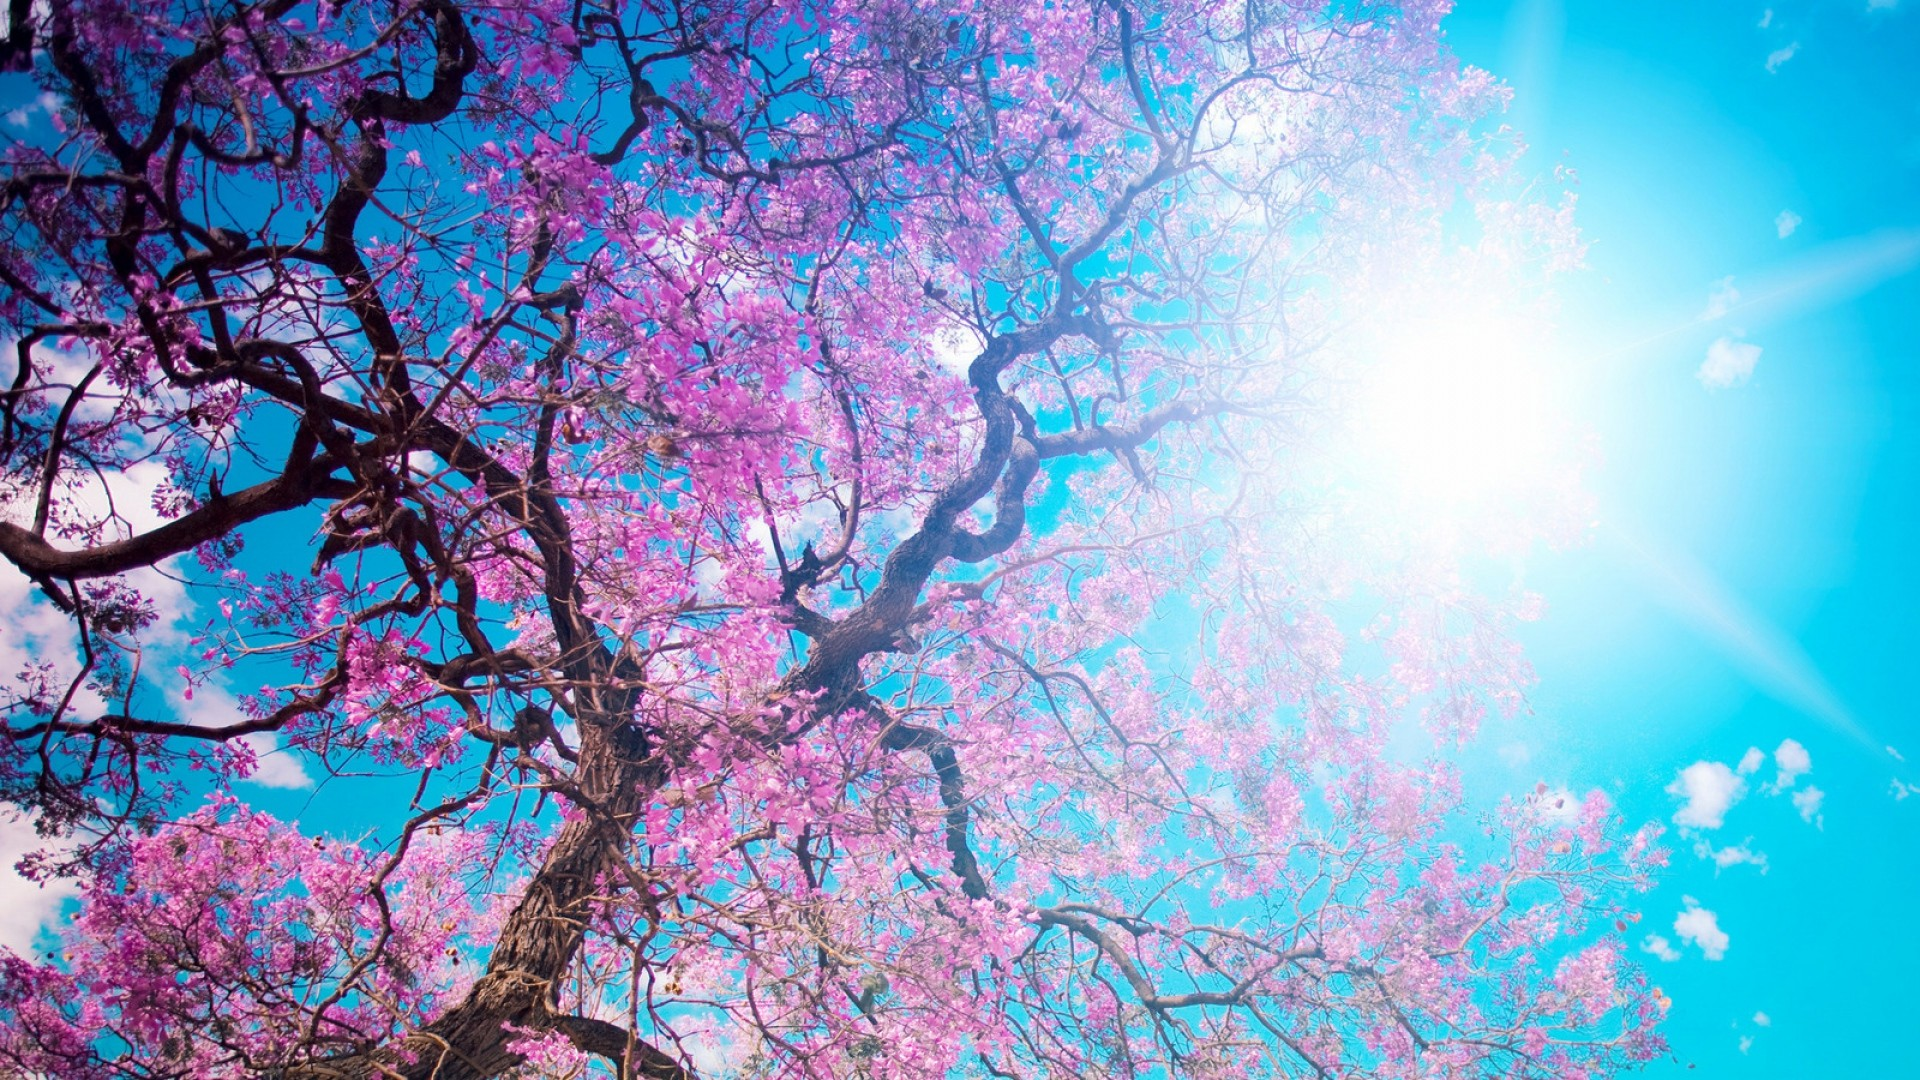 Res: 1920x1080, o-hanami, blossom festival and to enjoy the cherry blossoms, japan